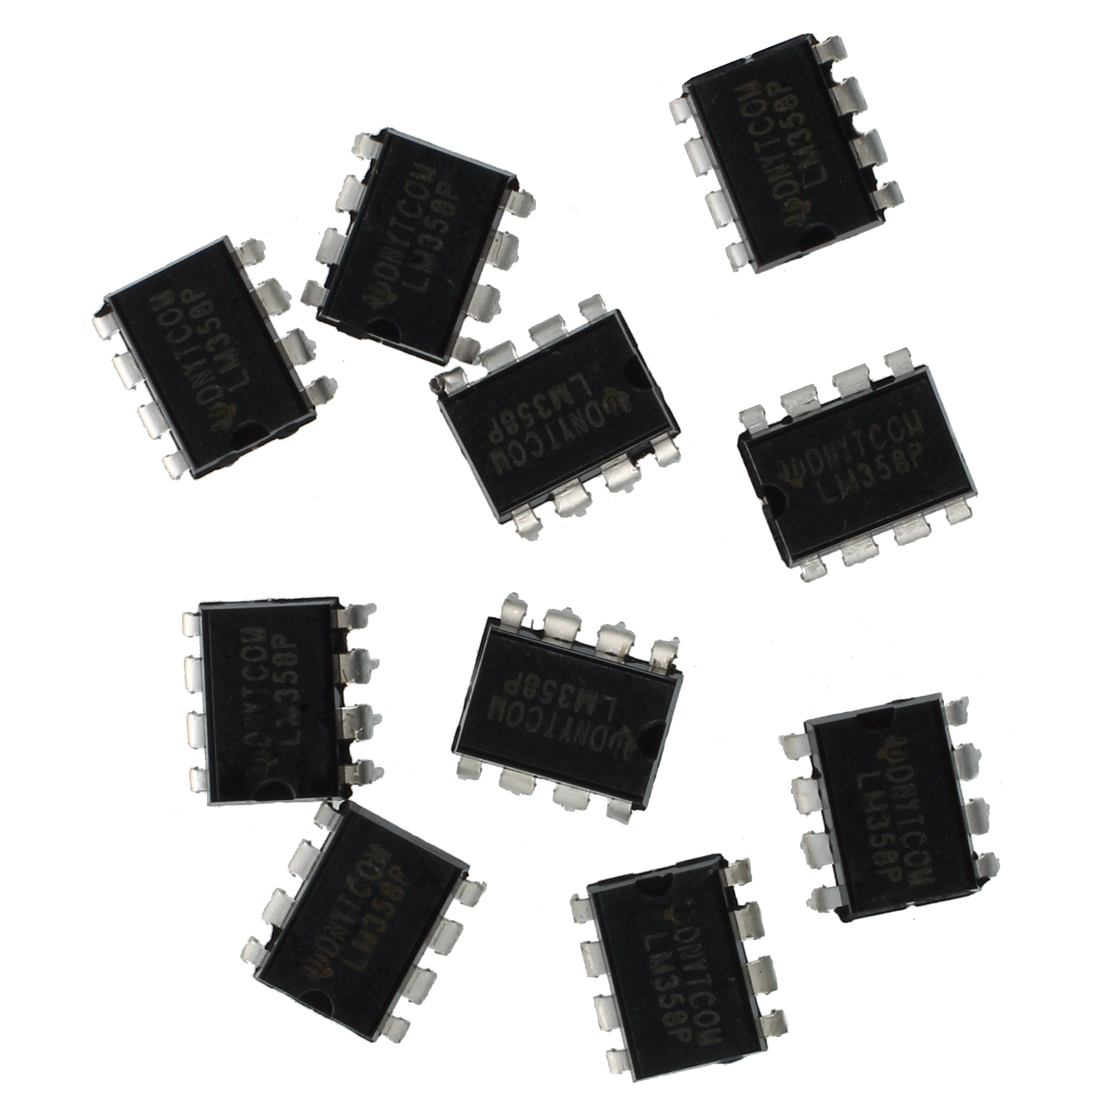 10x Lm358n Low Power 8 Pin Dual Operational Amplifier F8x3 Lm358 Integrated Circuit Dip8 Ebay